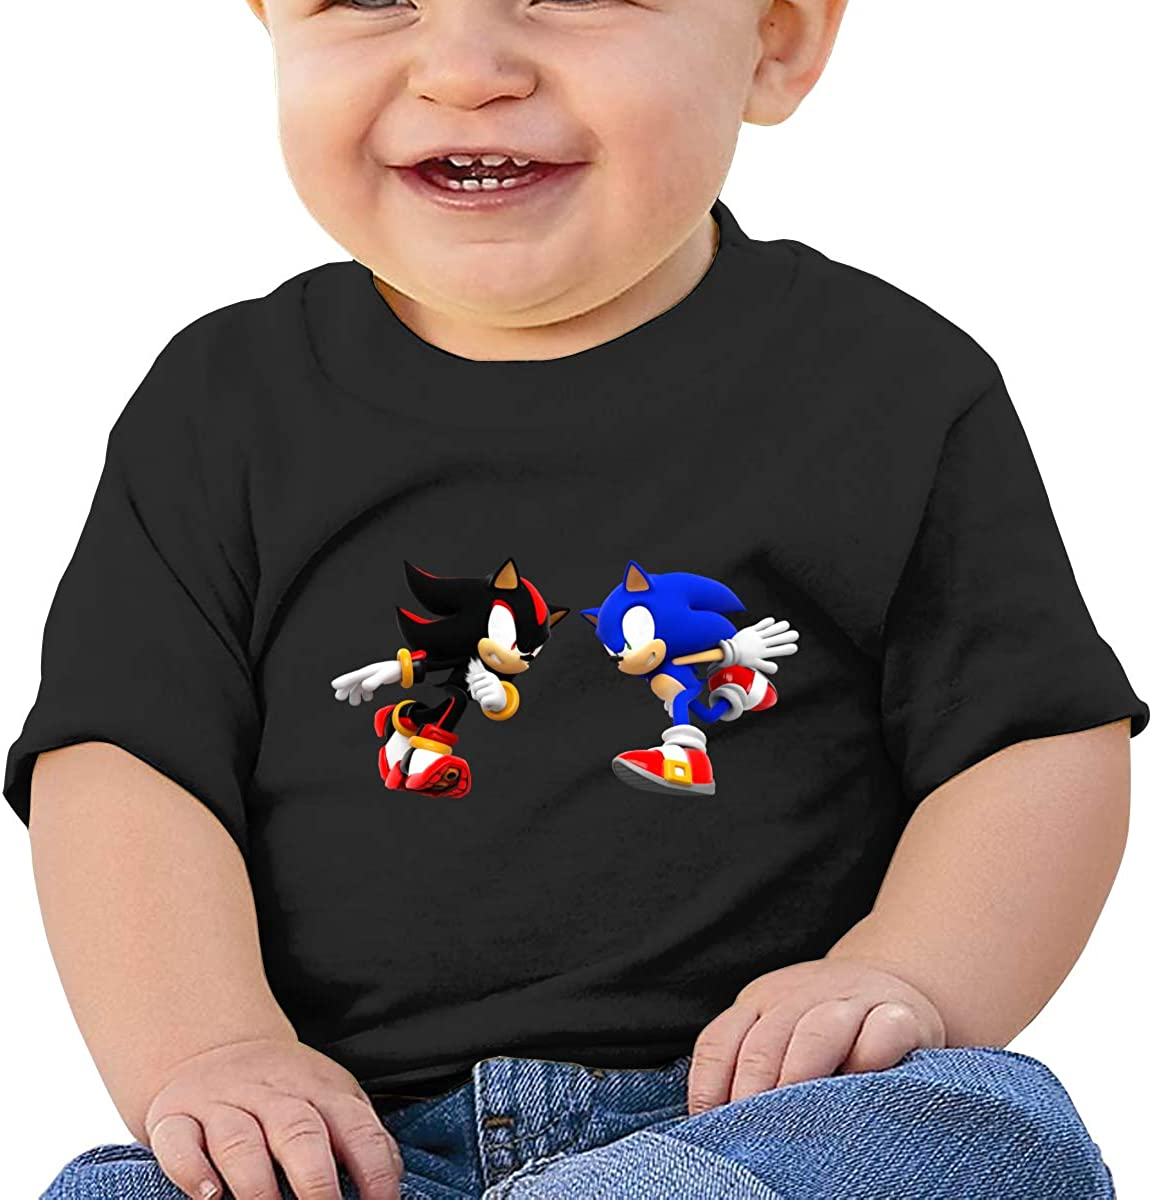 FHTD Sonic Colors Infant Graphic T-Shirt Baby Cartoon Cotton Tees Black